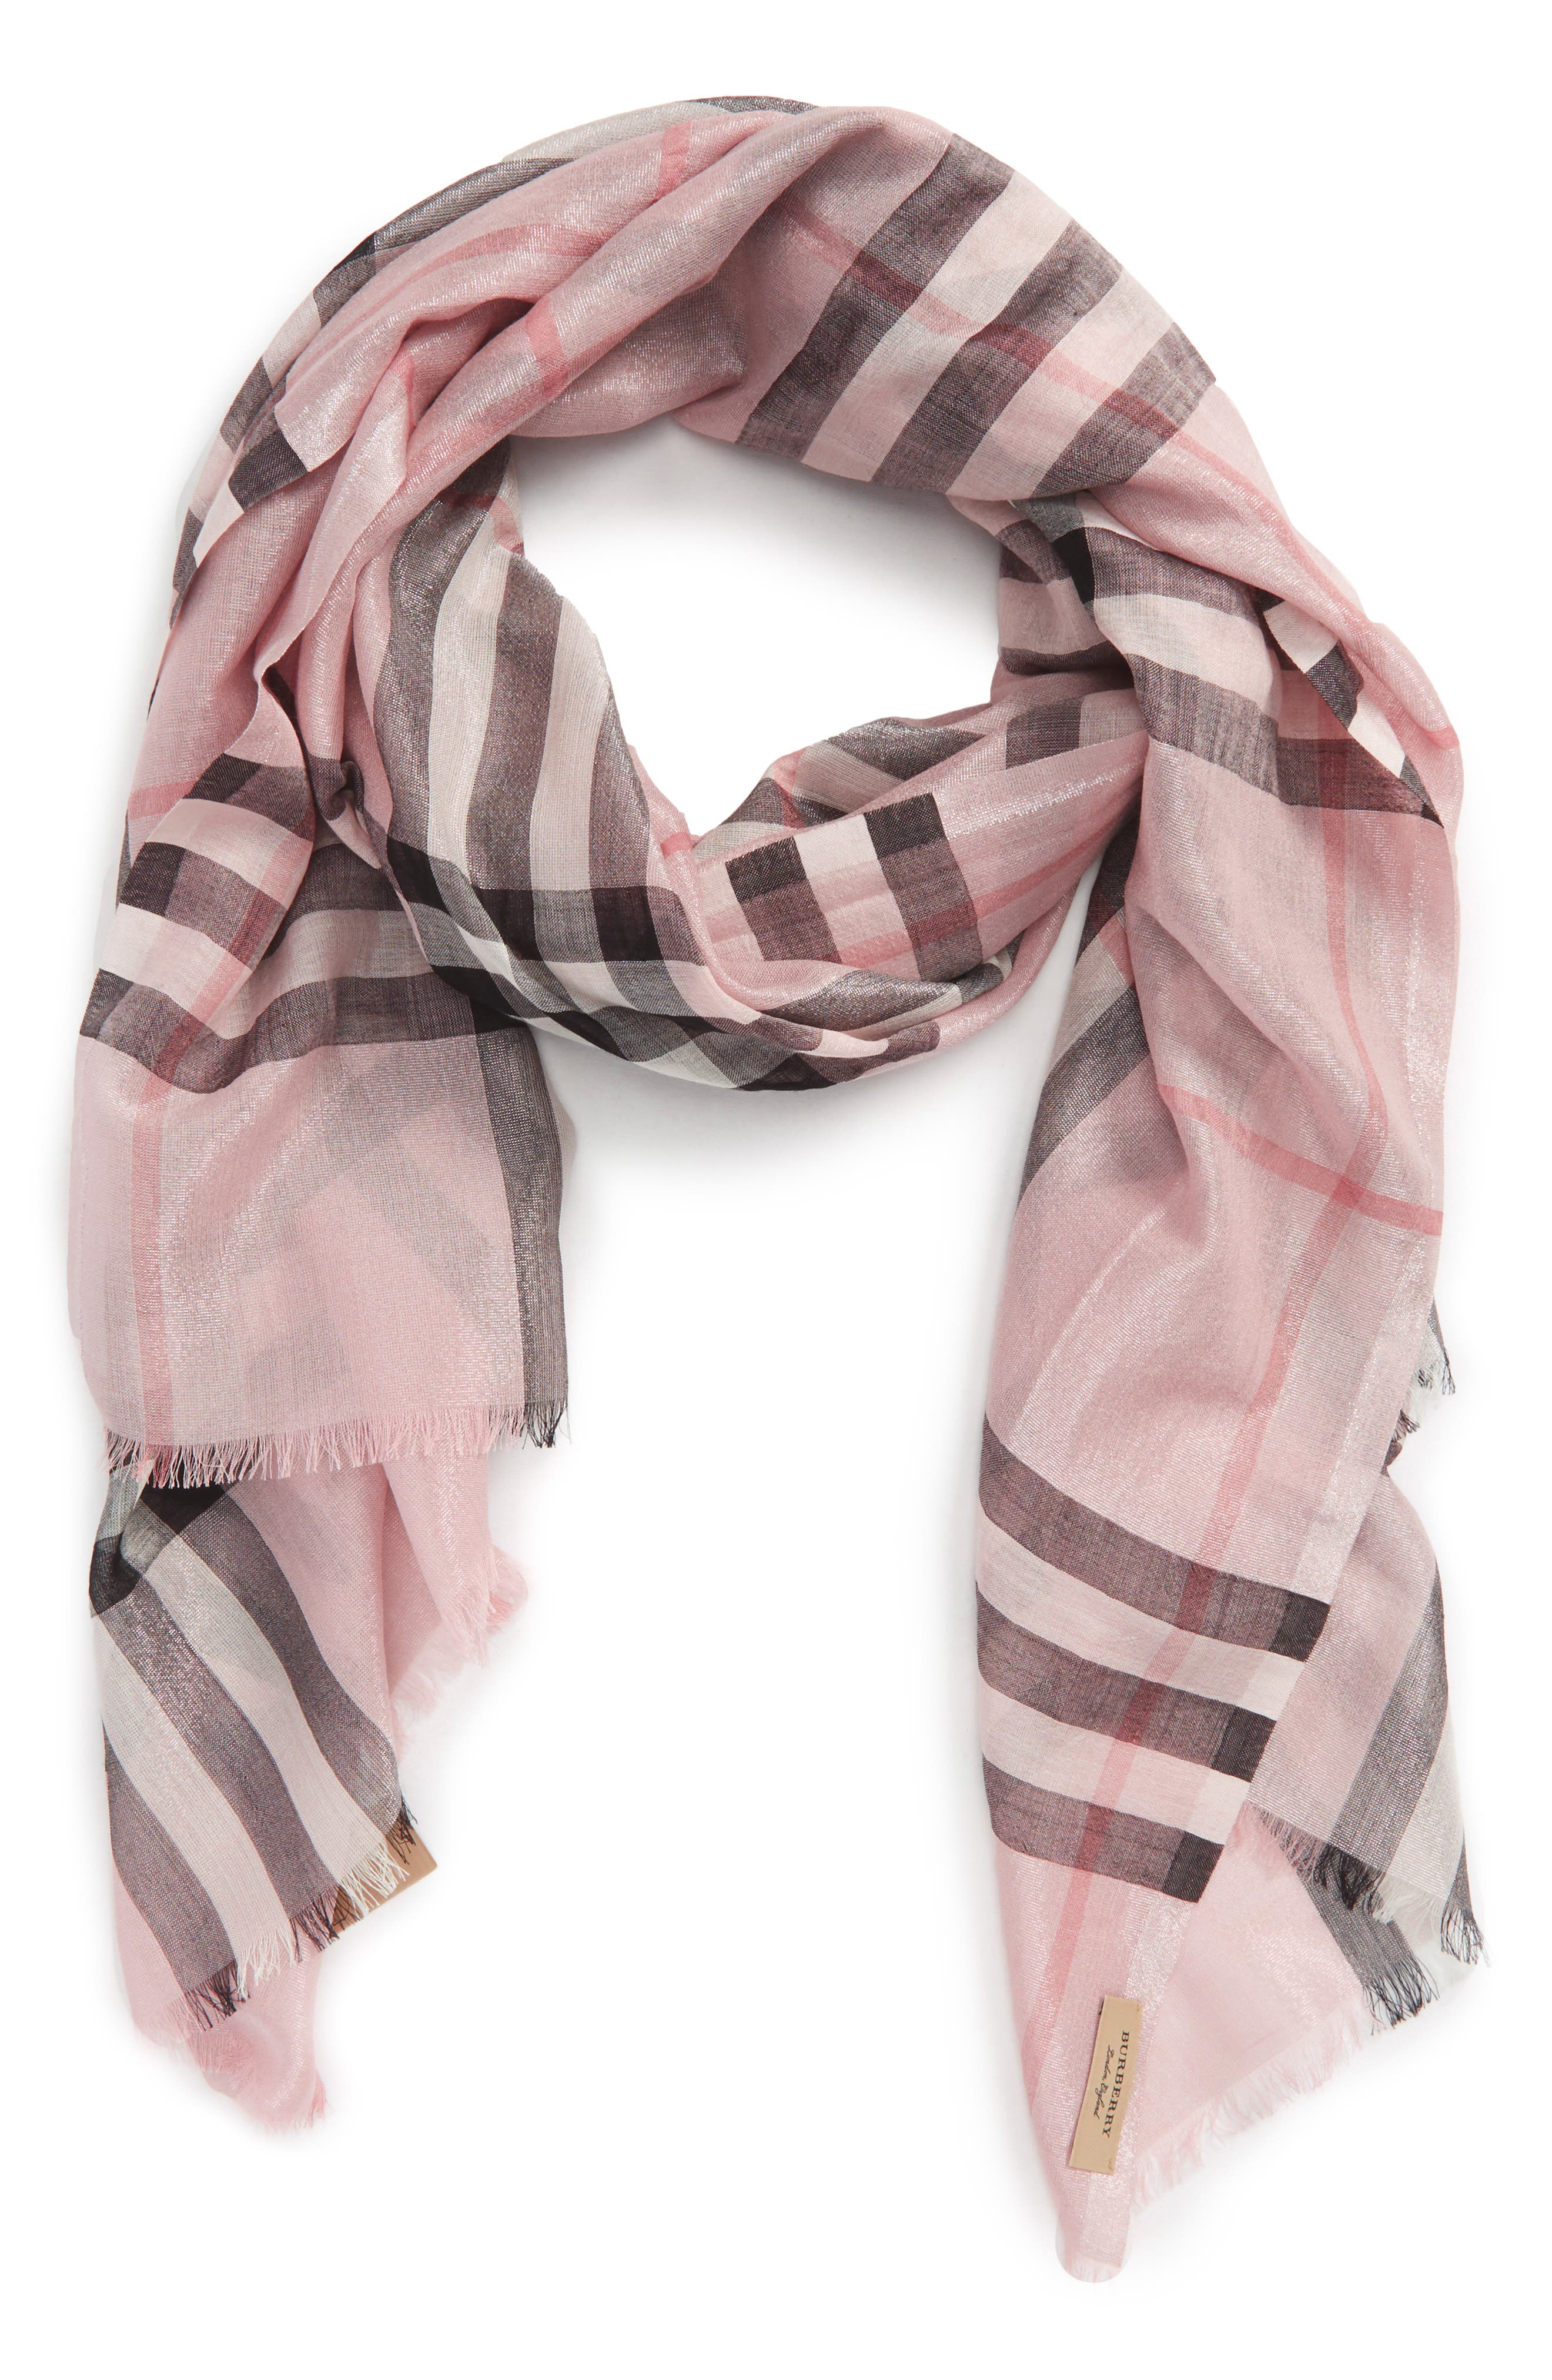 Metallic Giant Check Scarf,                         Main,                         color, ASH ROSE/ SILVER